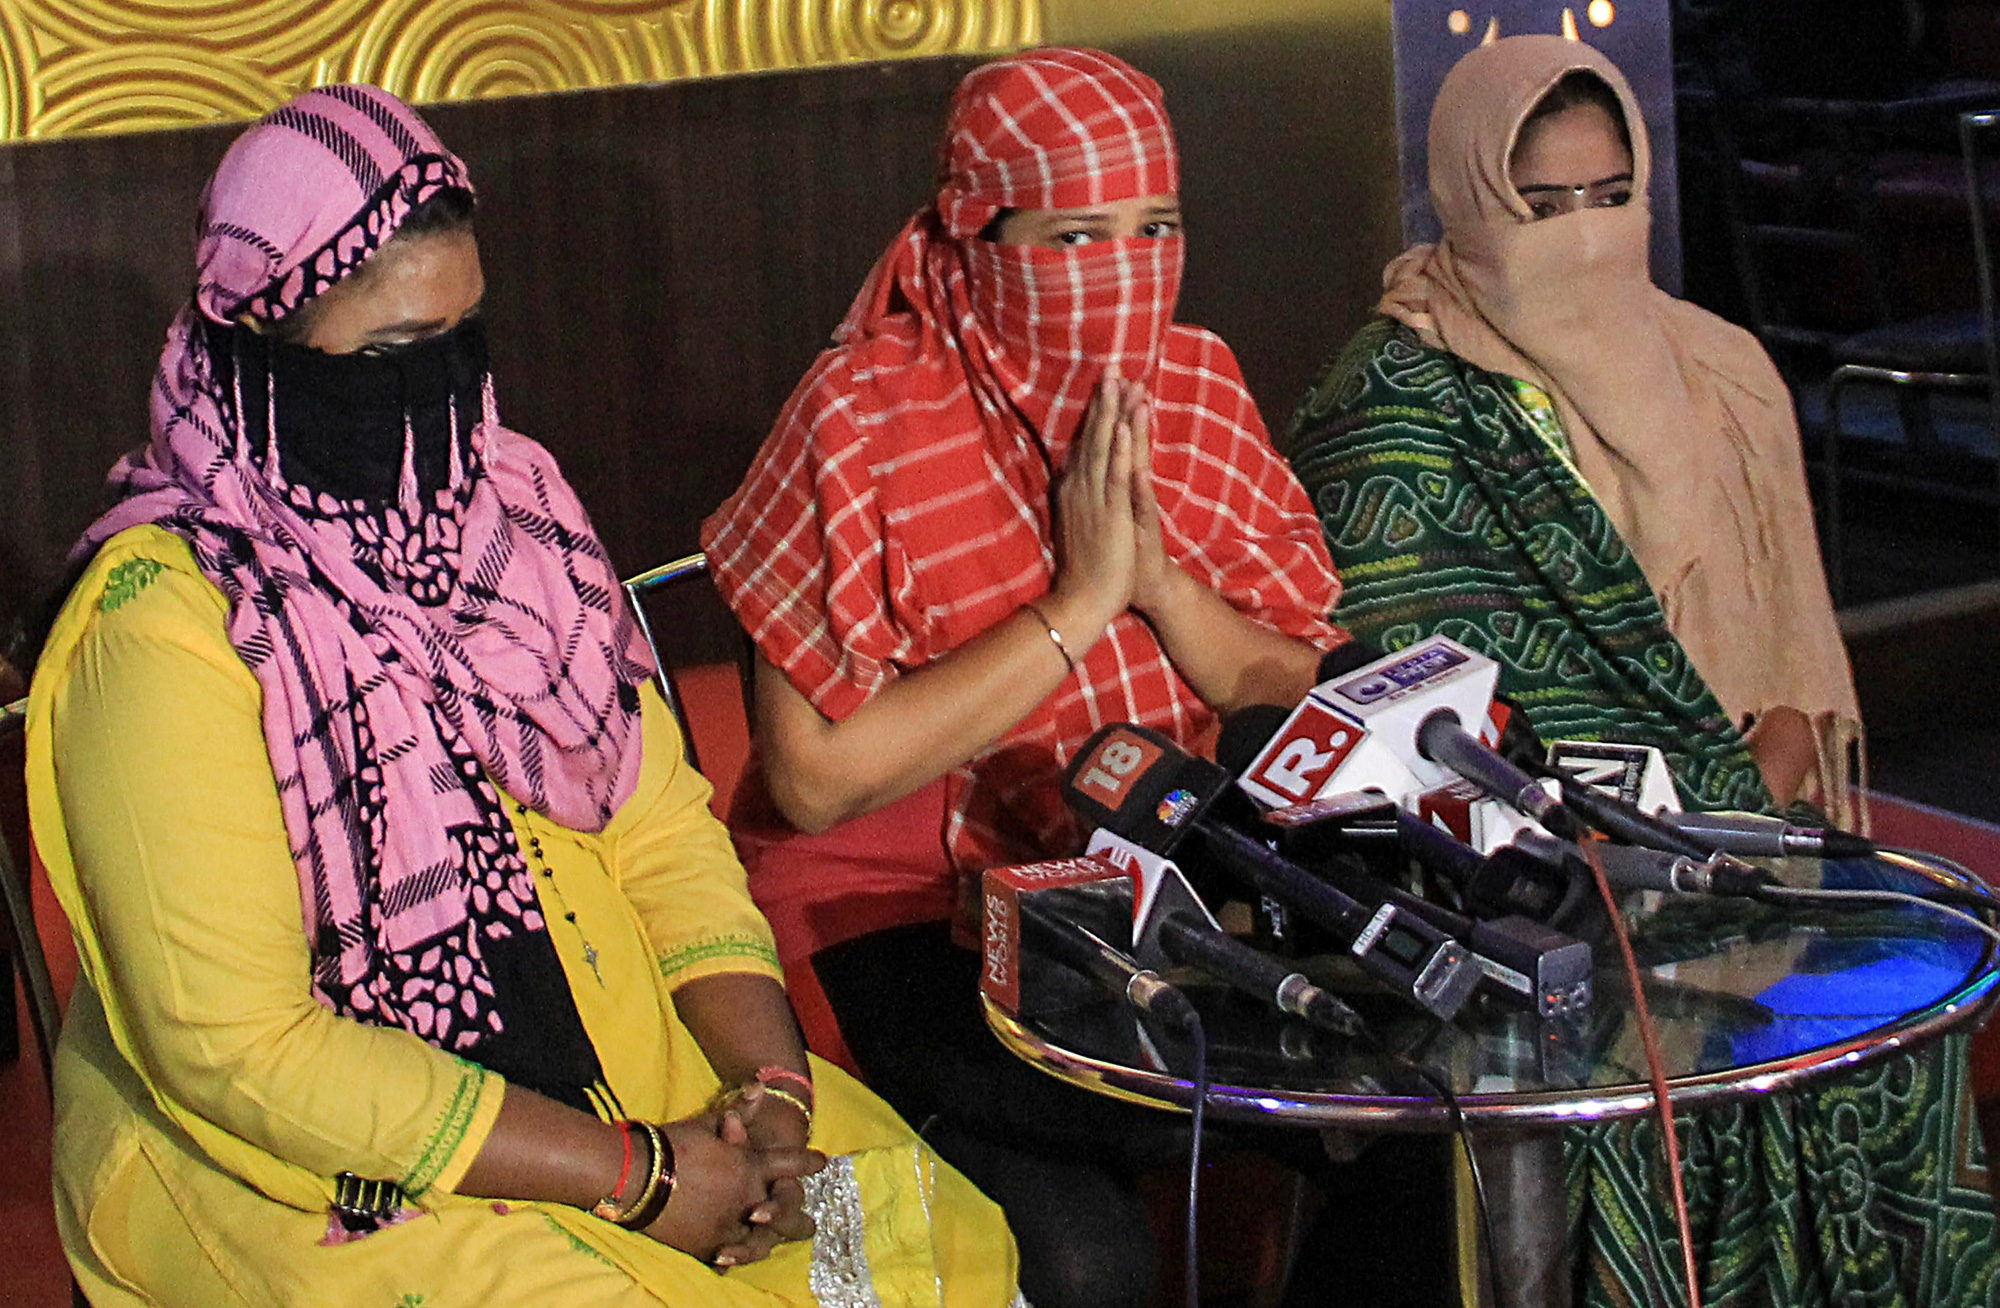 Bar dancers address the media in Mumbai on Thursday, January 17, after the Supreme Court's verdict which paved the way for the reopening of dance bars in Maharashtra. The 2005 ban had robbed many workers in these bars of their livelihood